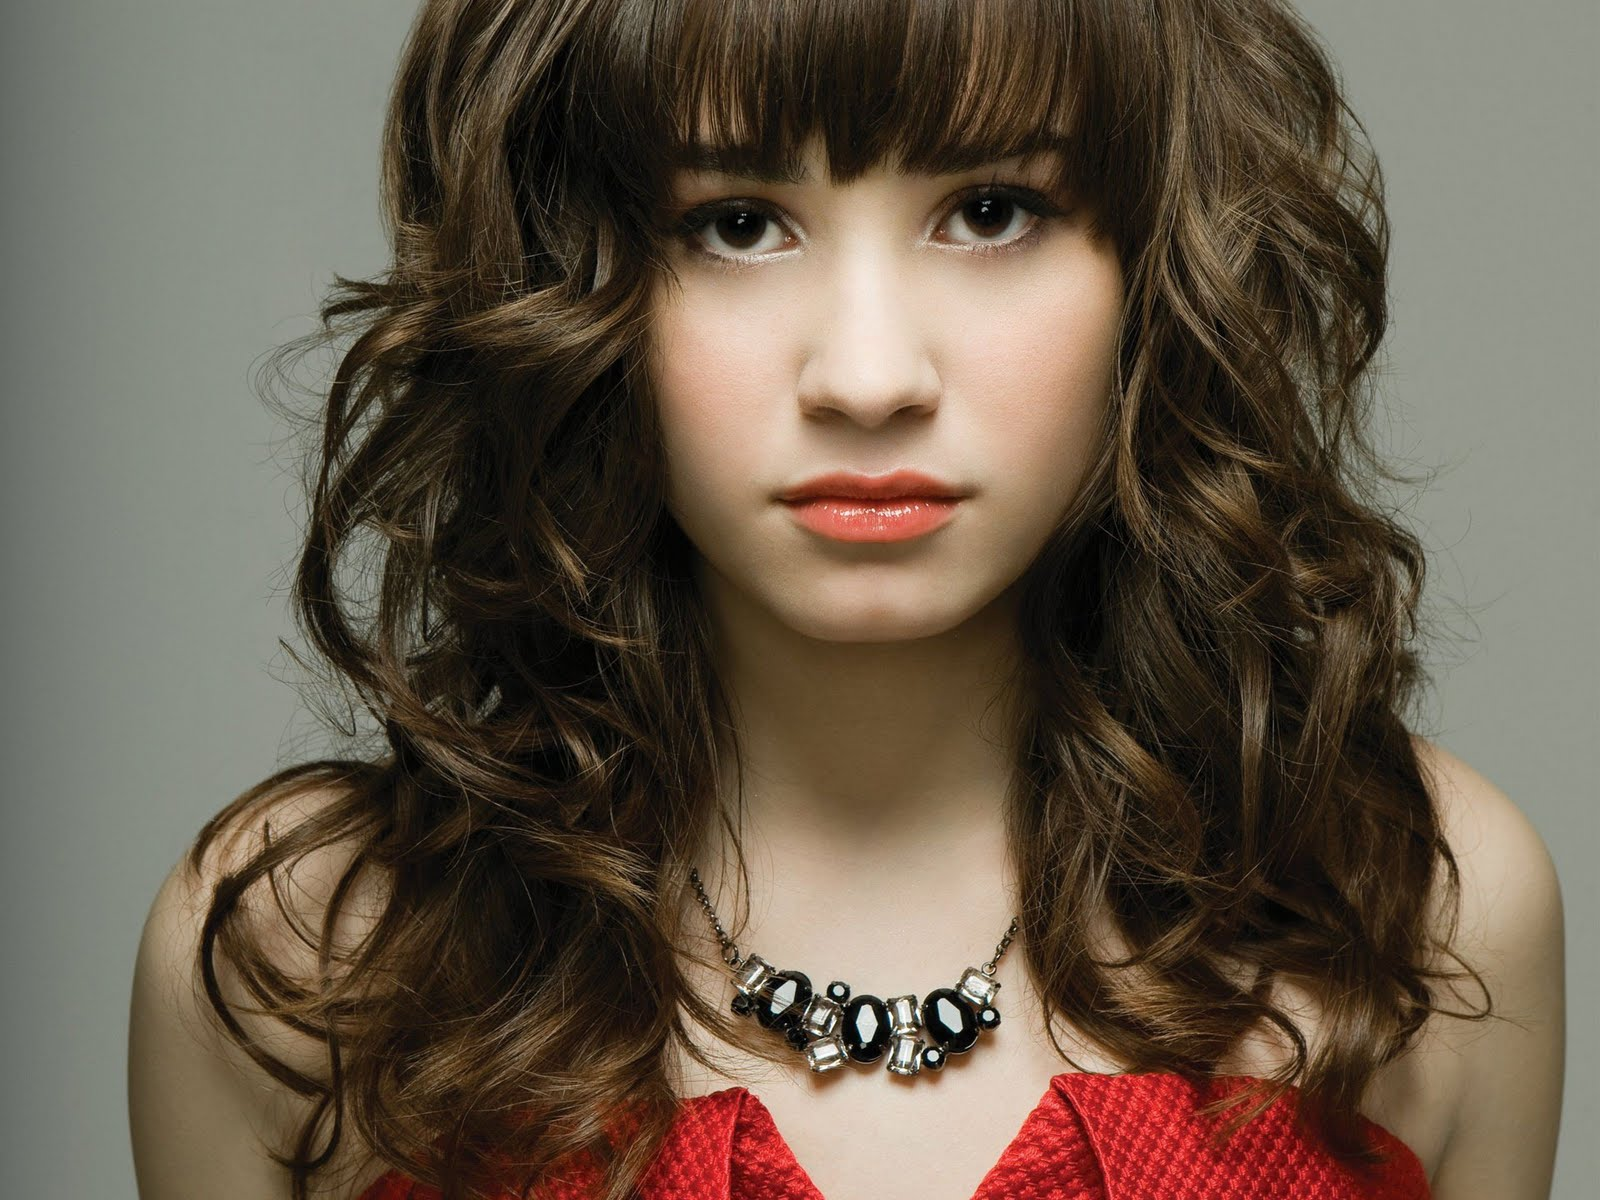 After her rehab stint last year for emotional and physical issues that included eating disorders and cutting i thought that former disney star demi